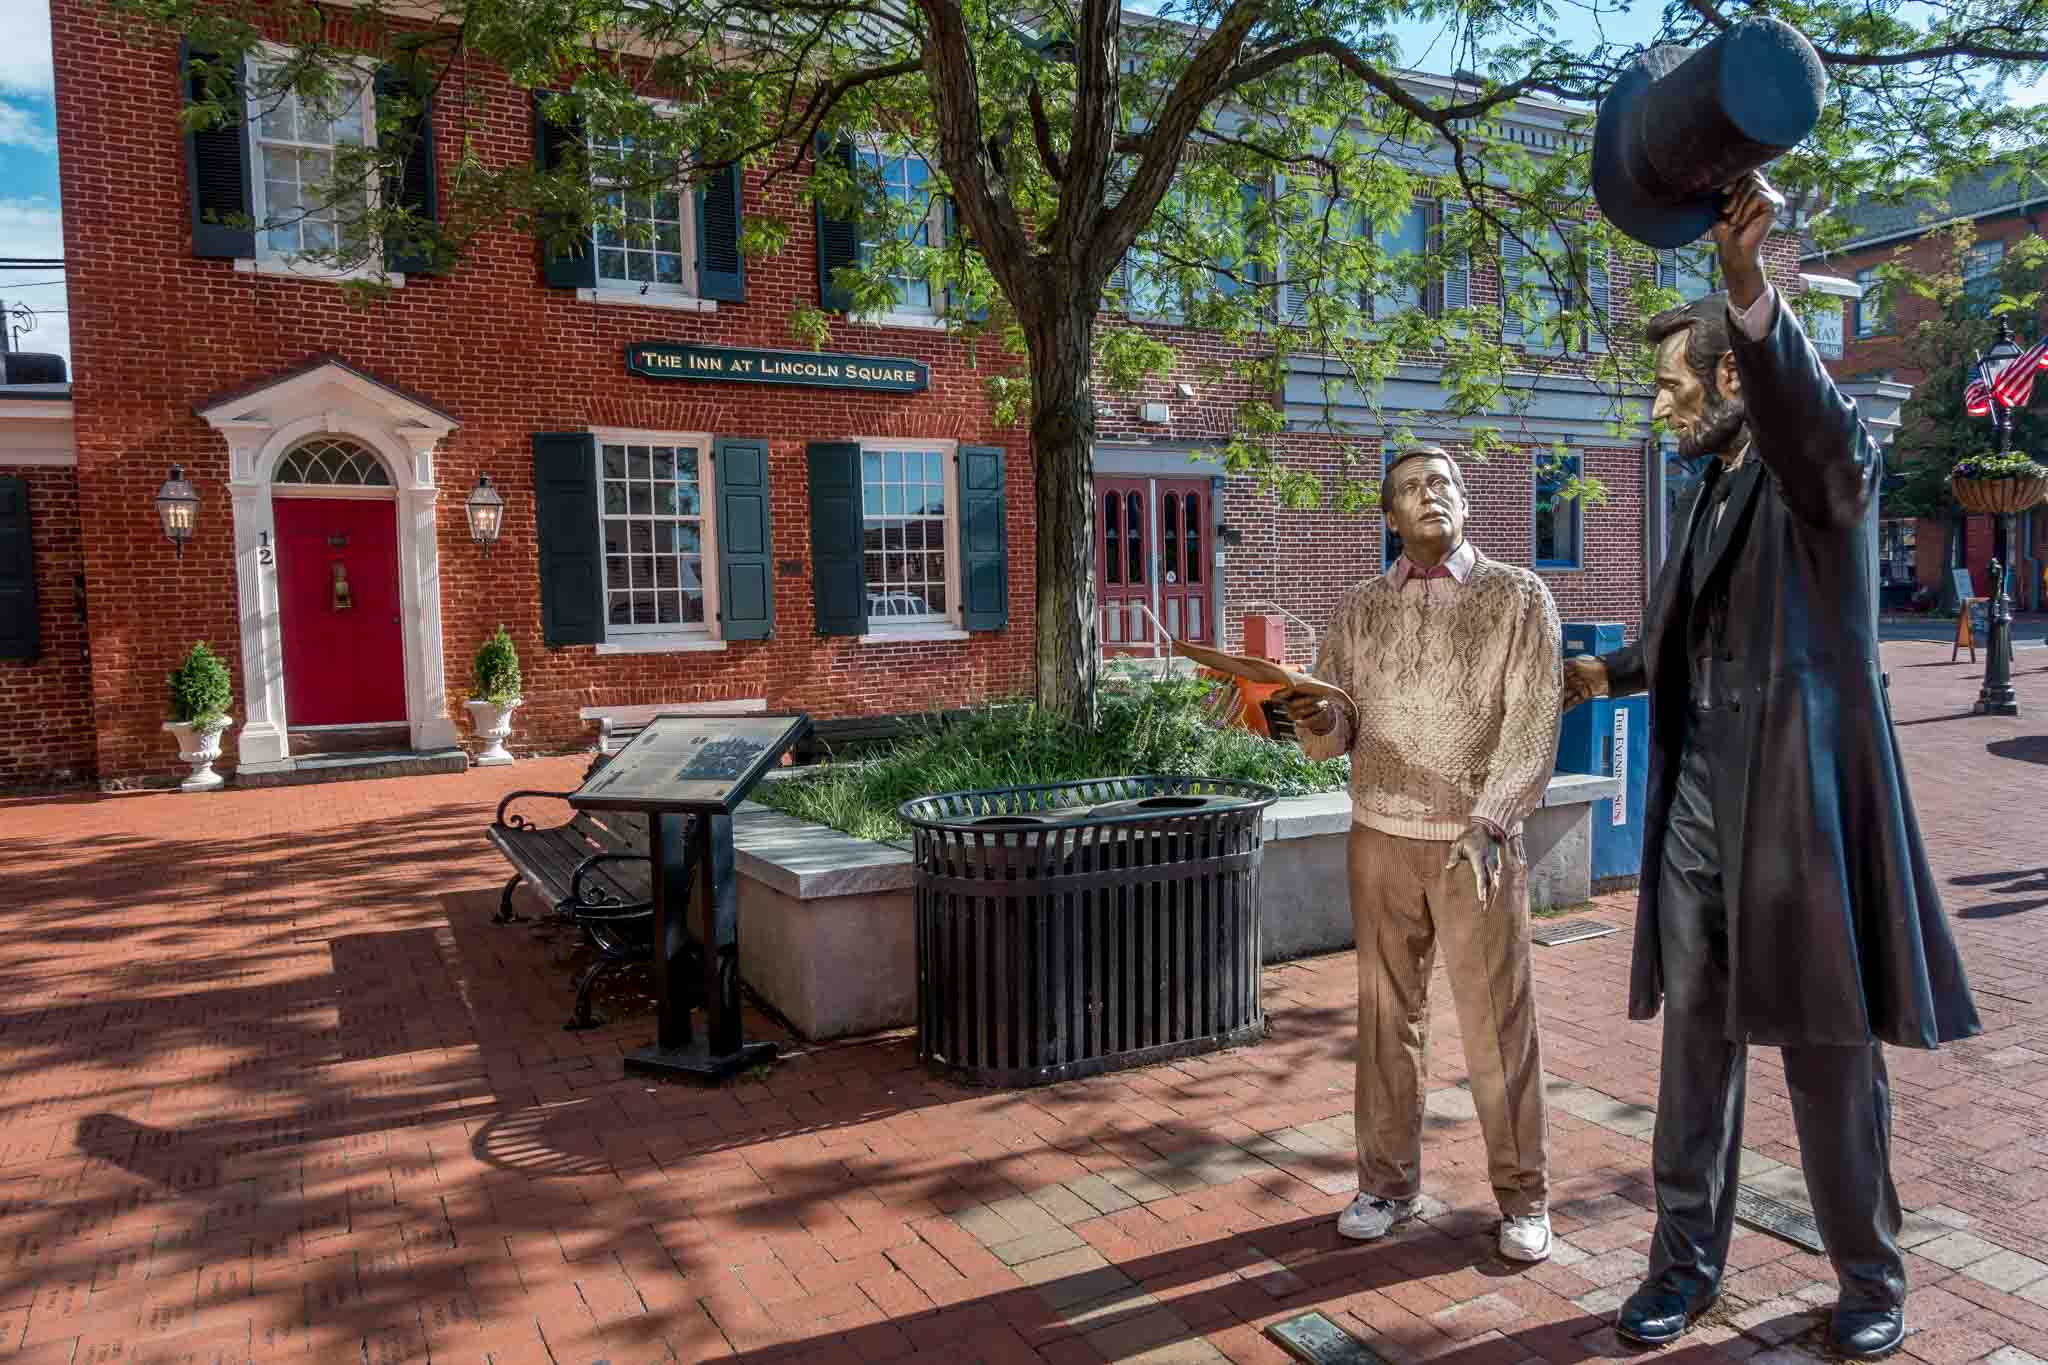 Statue of President Lincoln and a visitor to Gettysburg